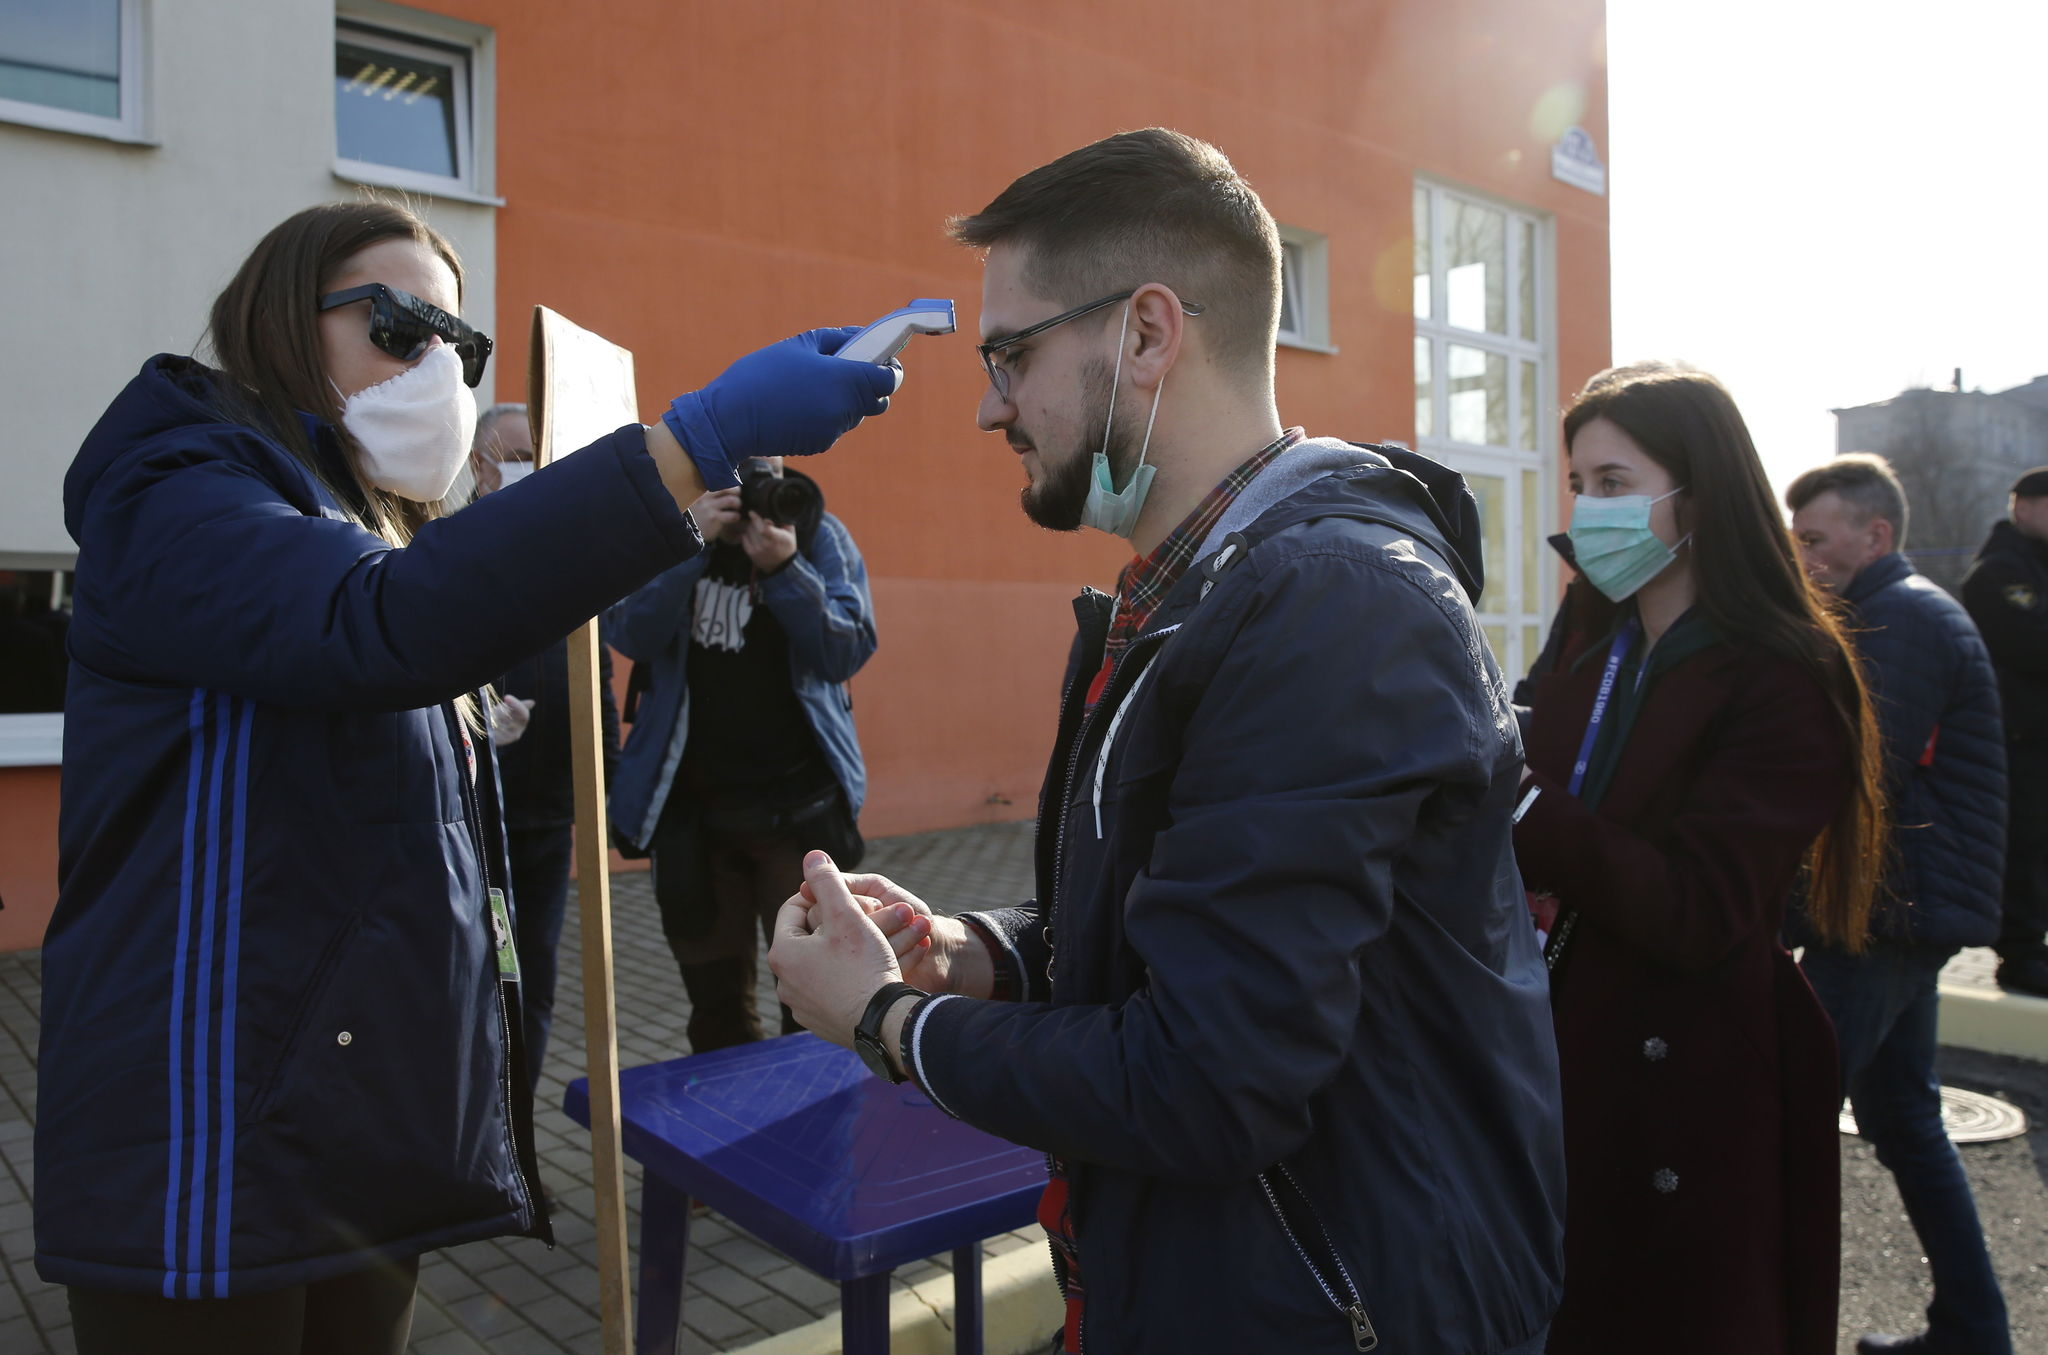 Minsk ( lt;HIT gt;Belarus lt;/HIT gt;), 28/03/2020.- Fans are checked, if they have high body temperature, at the entrance to a stadium prior the Belarusian Premier League soccer match between FC Minsk and FC Dinamo-Minsk in Minsk, lt;HIT gt;Belarus lt;/HIT gt;, 28 March 2020. lt;HIT gt;Belarus lt;/HIT gt; didnt suspend soccer games, as most of European countries did because of coronavirus COVID19 pandemic. lt;HIT gt;Belarus lt;/HIT gt; plans to hold all soccer matches, as scheduled, local media reports. (Bielorrusia) EFE/EPA/TATYANA ZENKOVICH